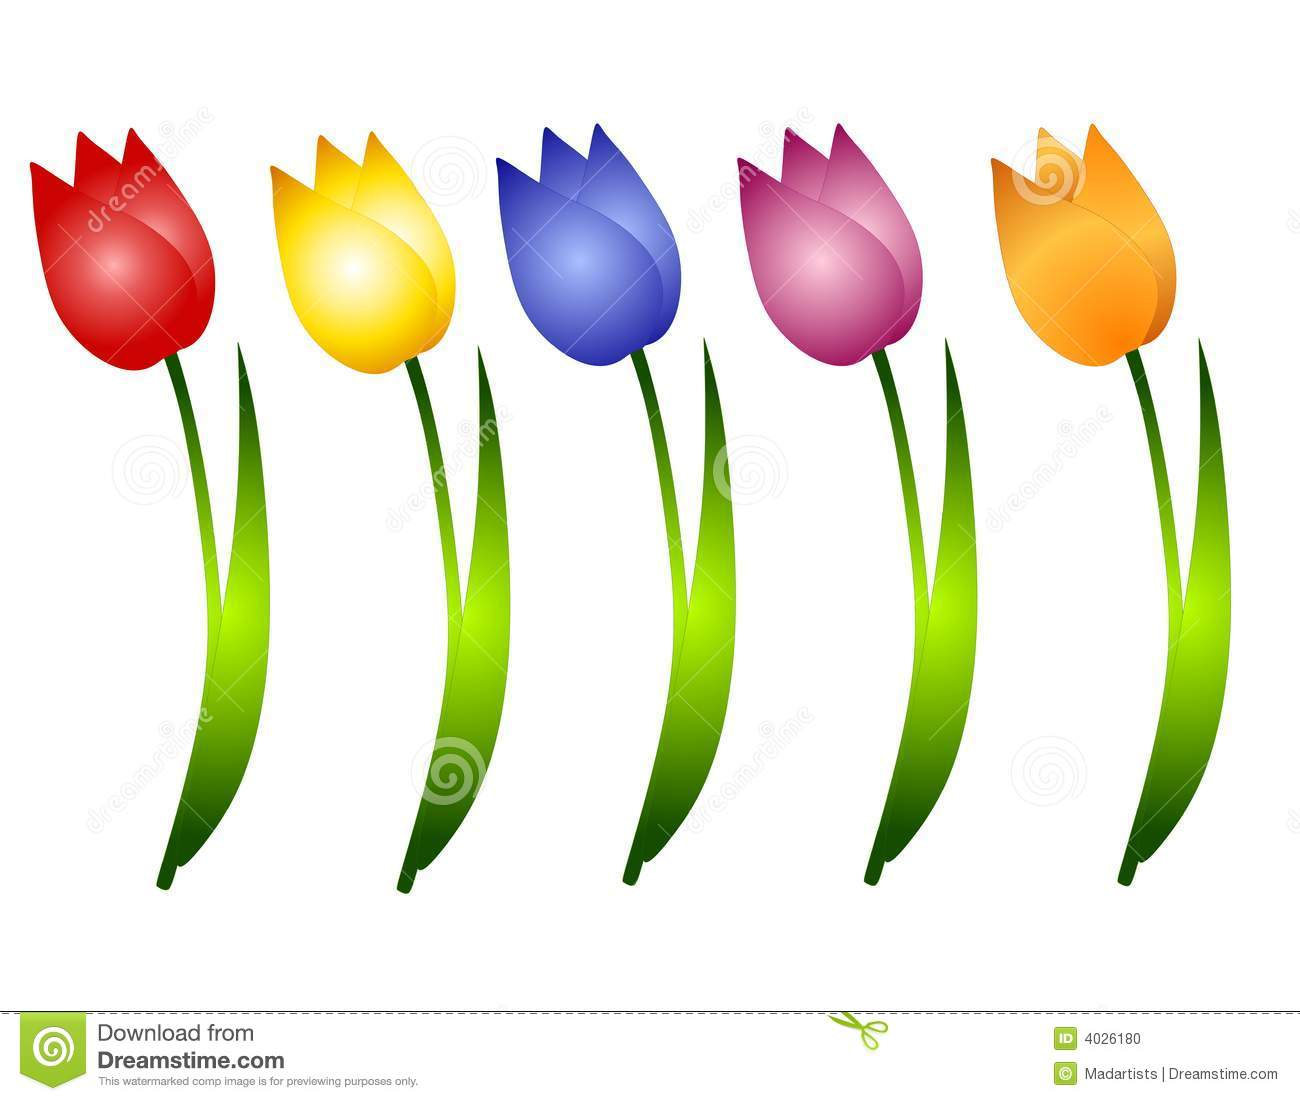 Assorted spring tulips flowers clip art stock illustration assorted spring tulips flowers clip art mightylinksfo